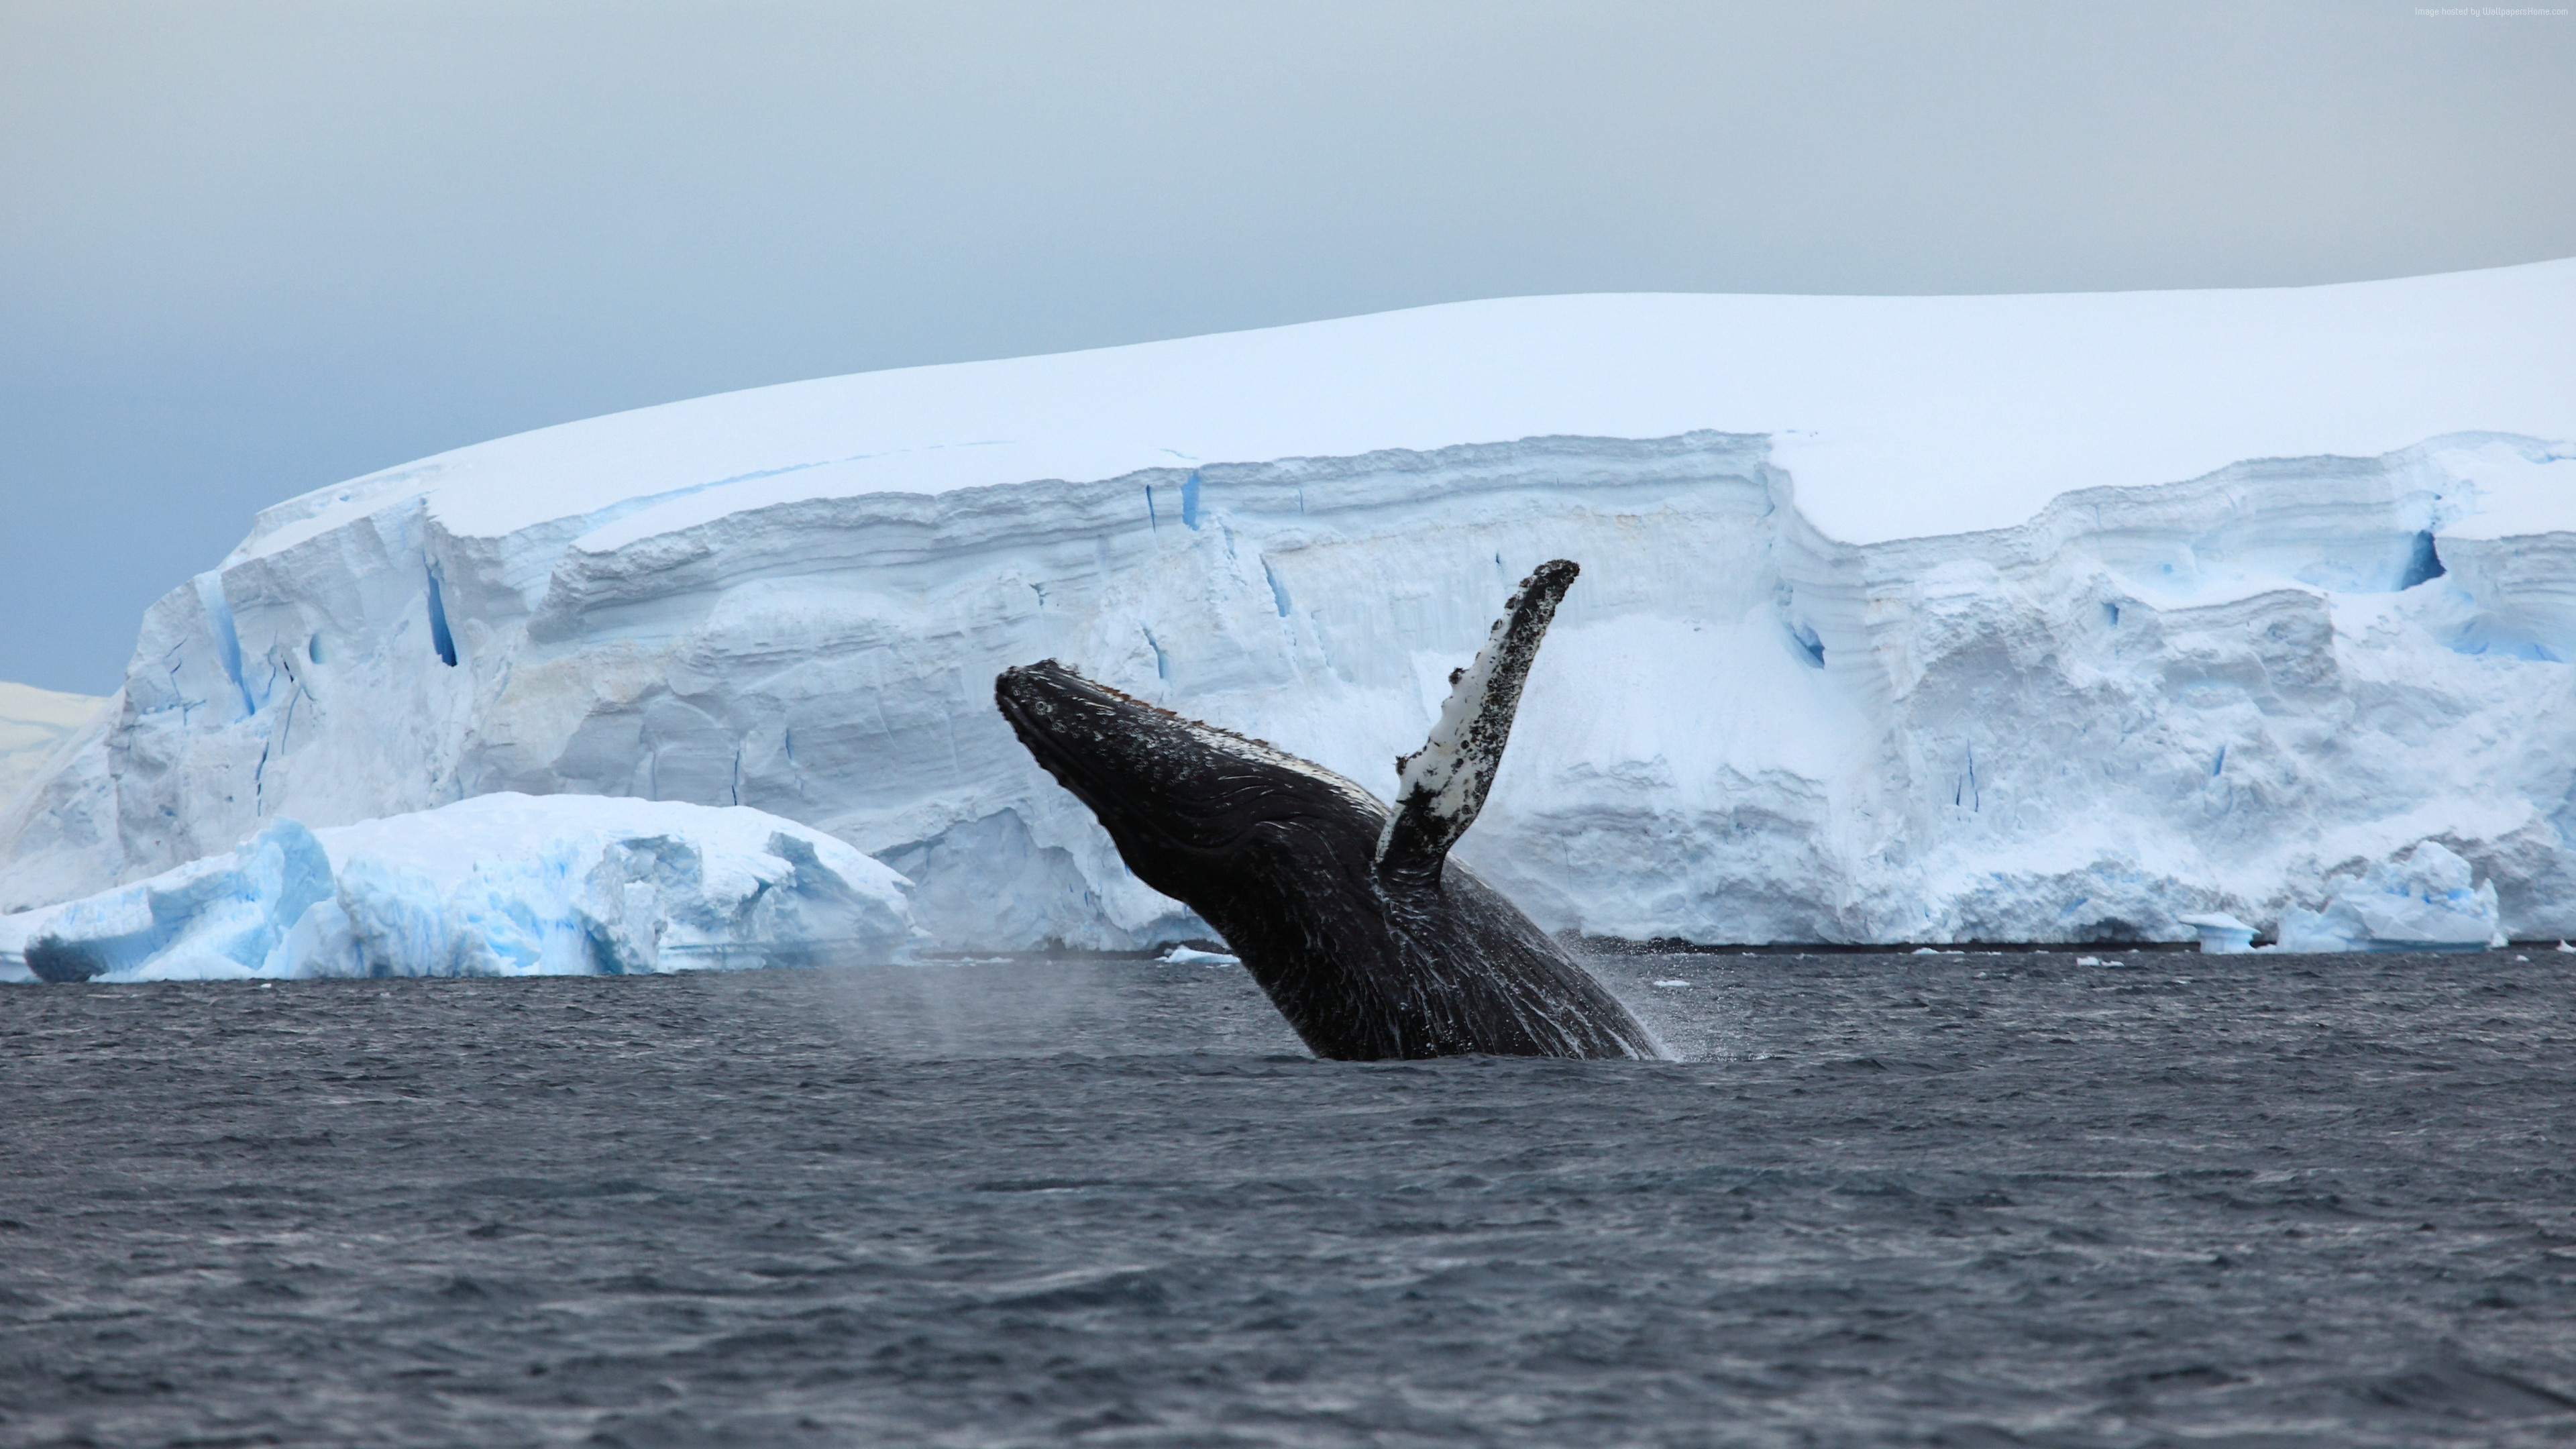 Wallpaper Antarctica, ocean, ice, whale, 4k, Nature